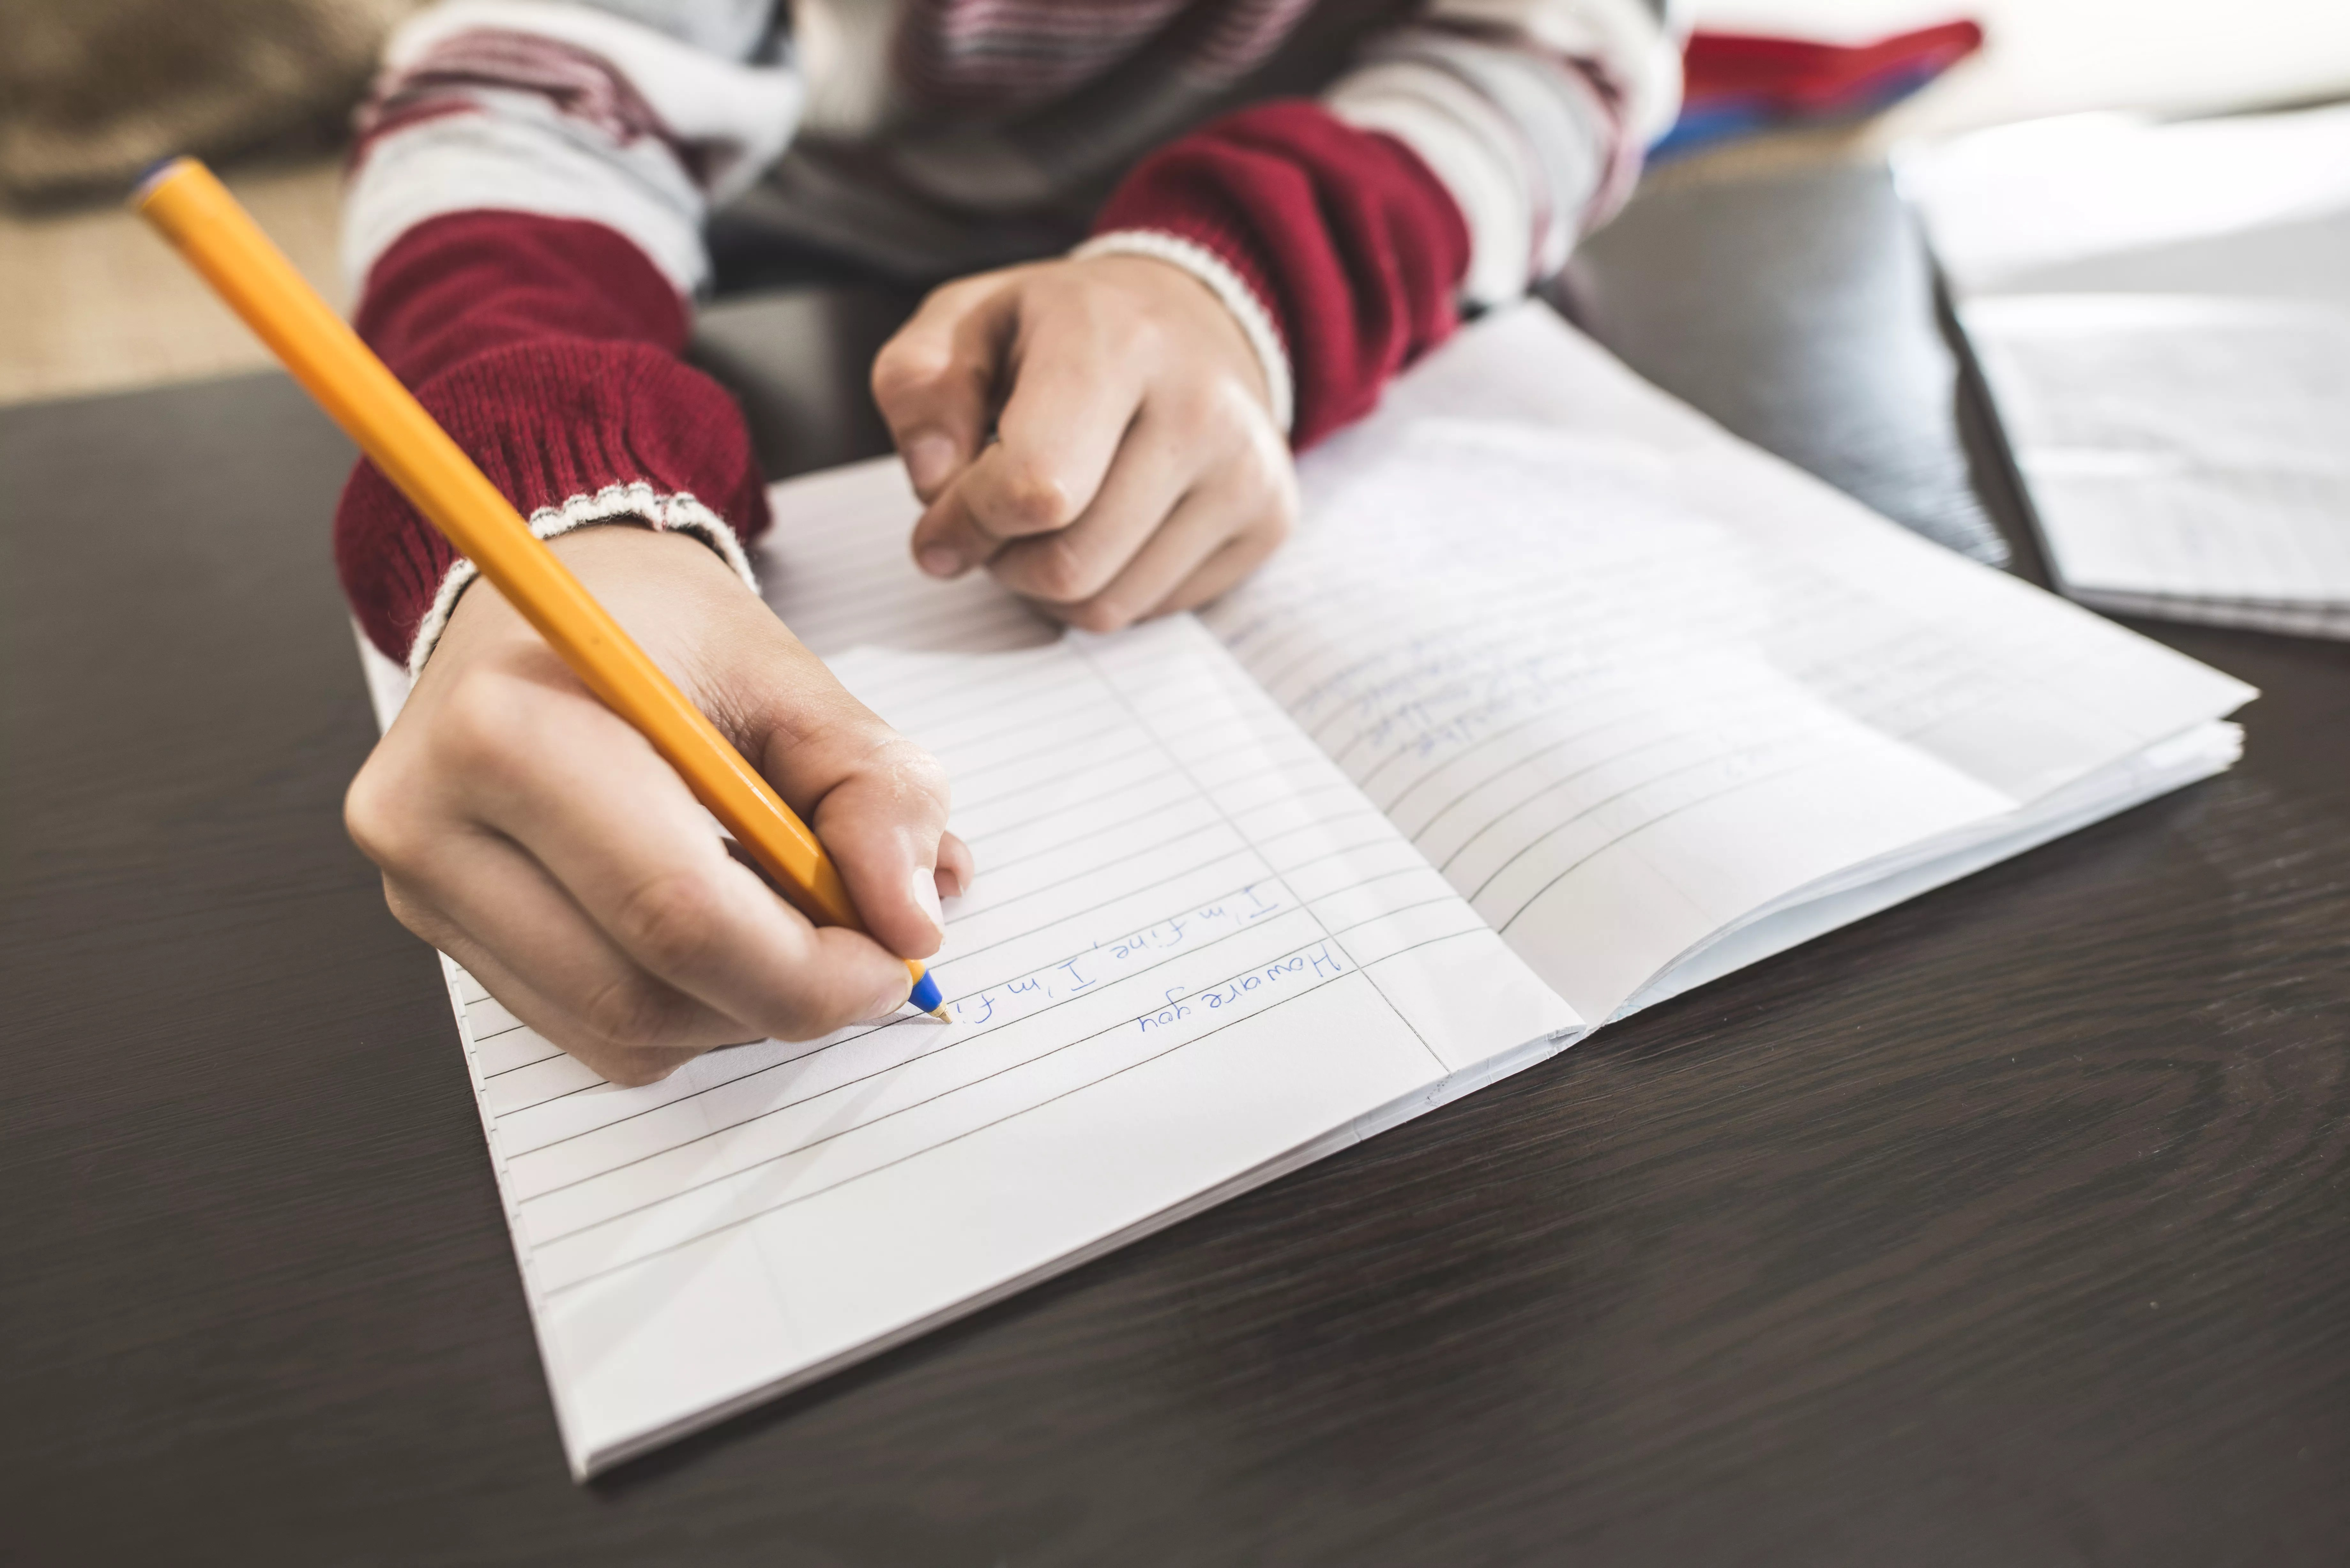 How To Improve Writing Skills For Kids 14 Easy Tips